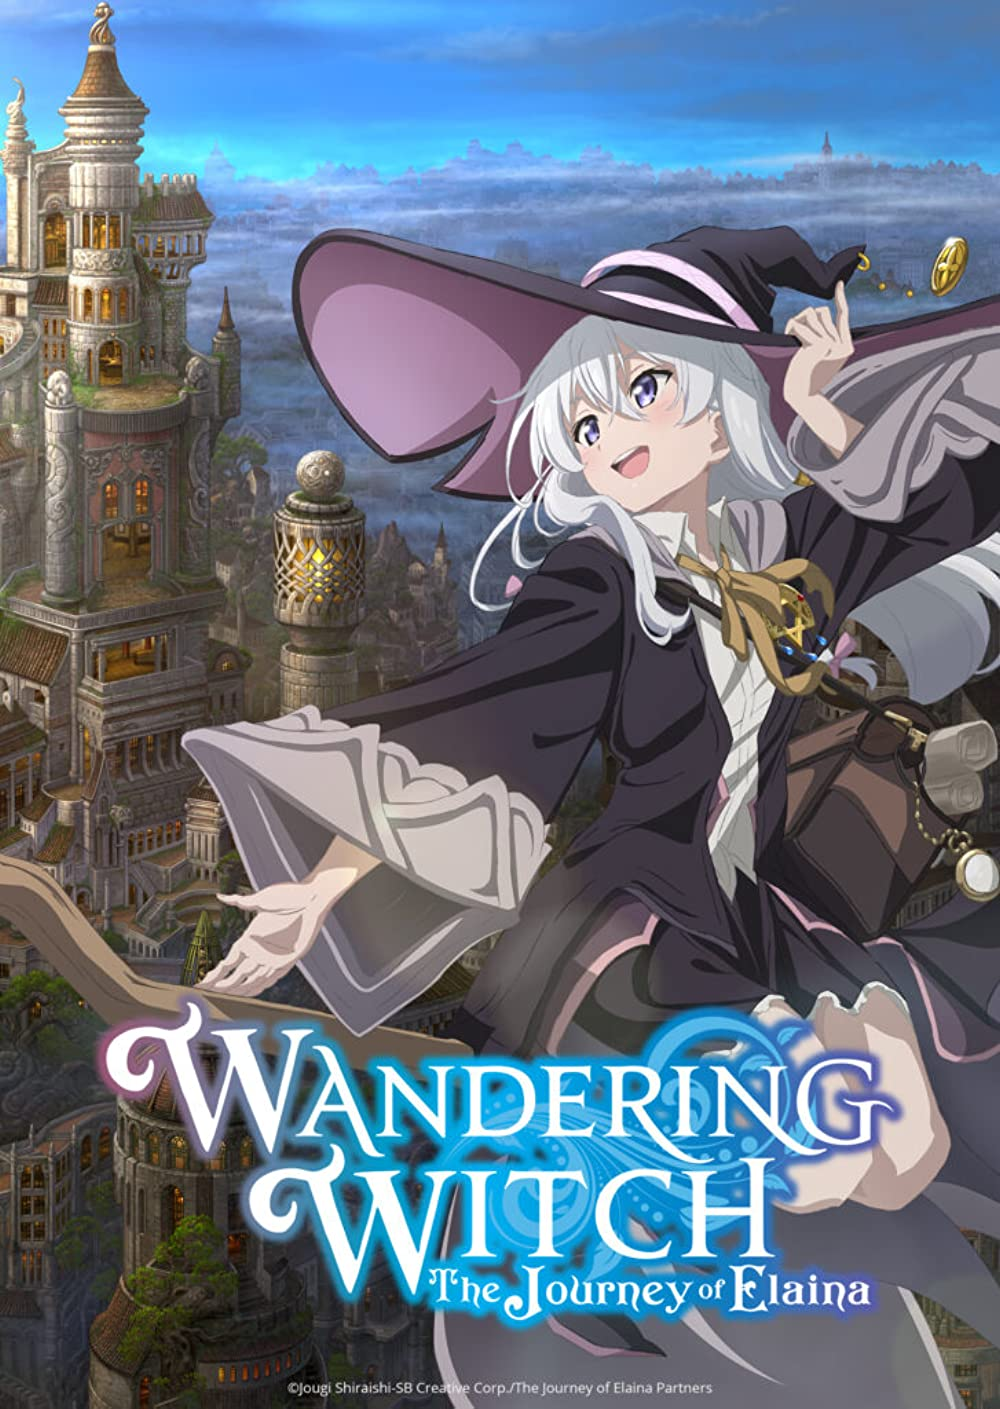 Background image for Wandering Witch: The Journey of Elaina Review